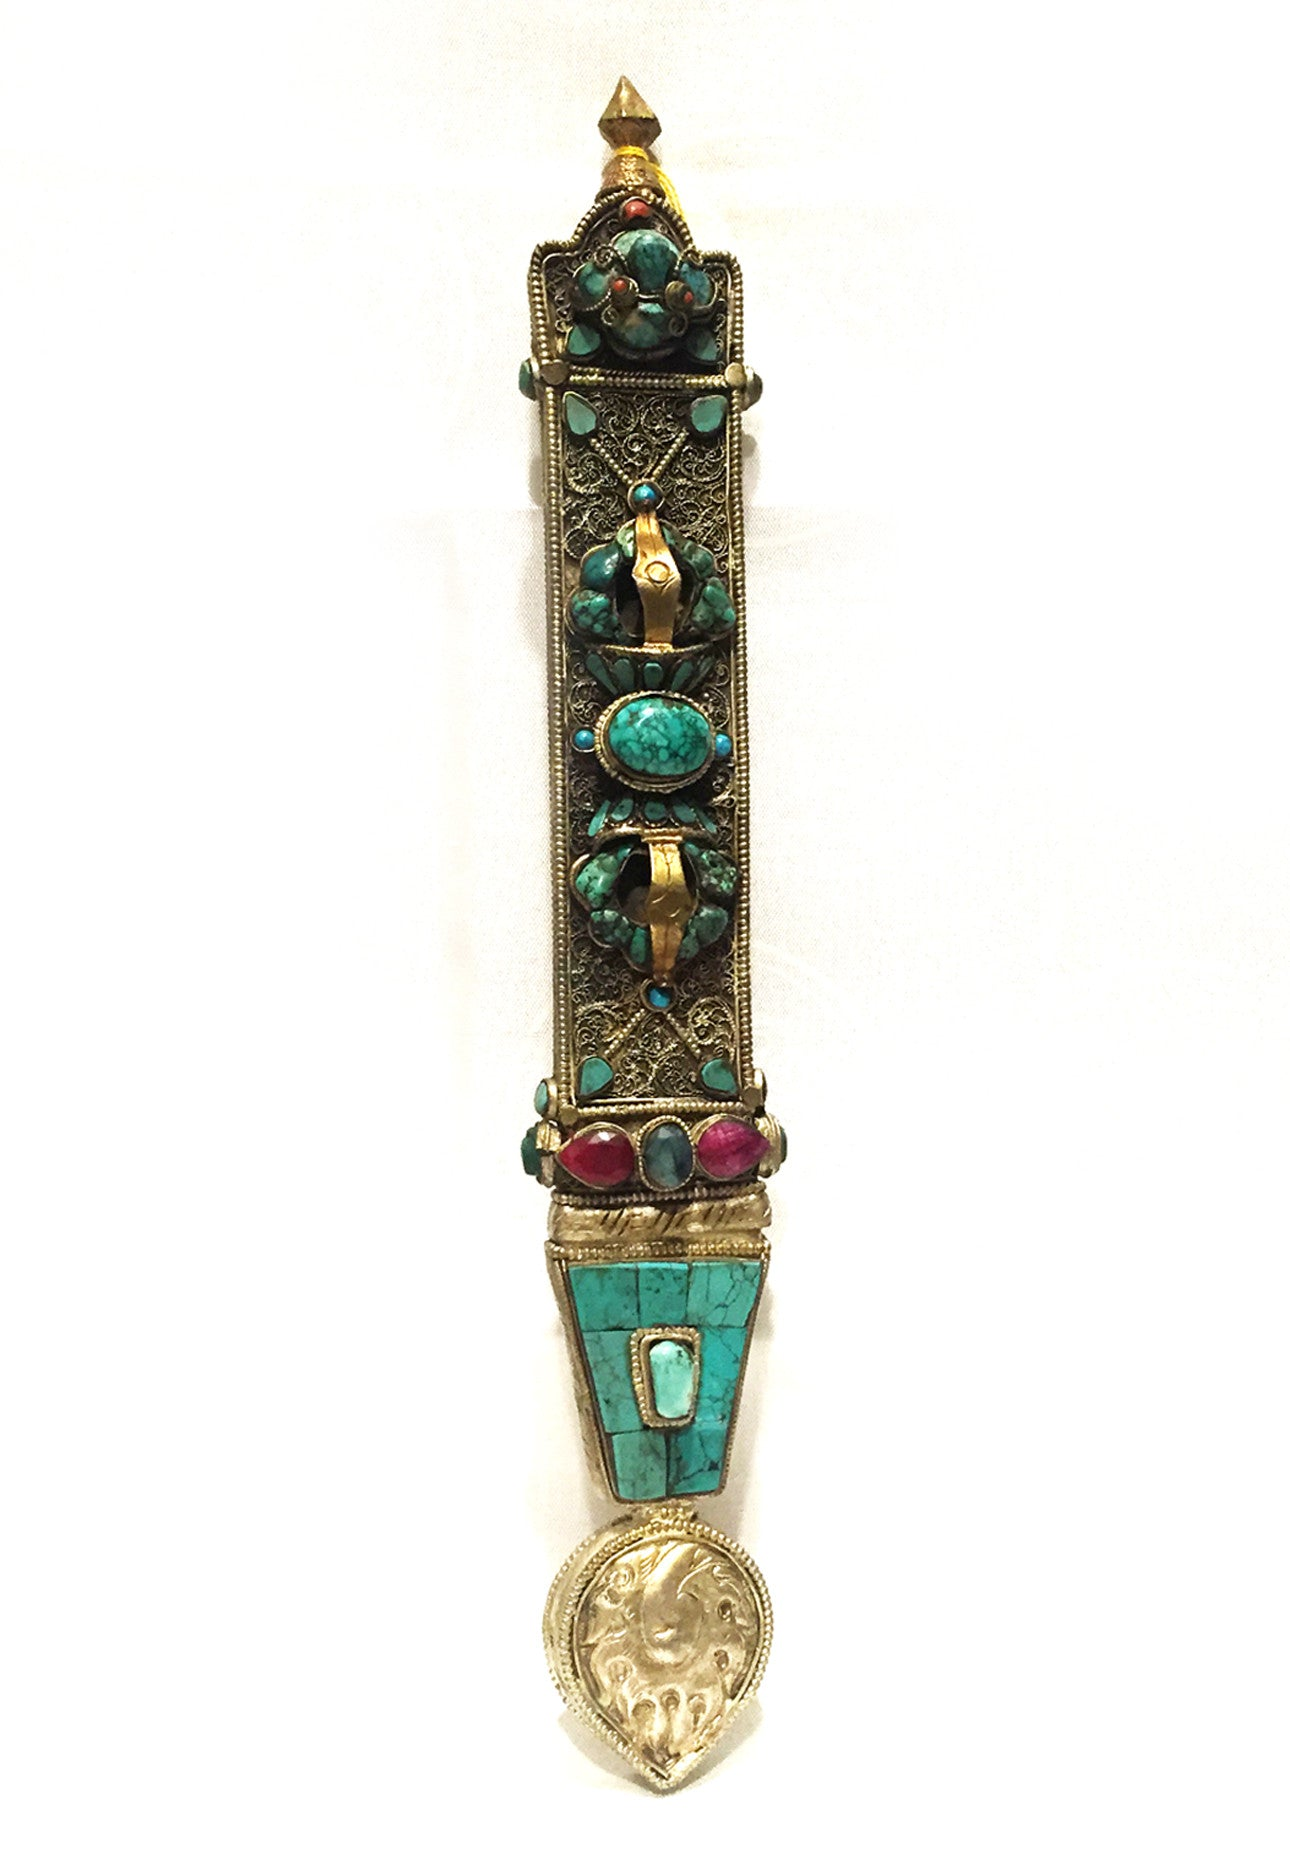 Tibetan traditional noble man's dagger - Tibet Arts & Healing